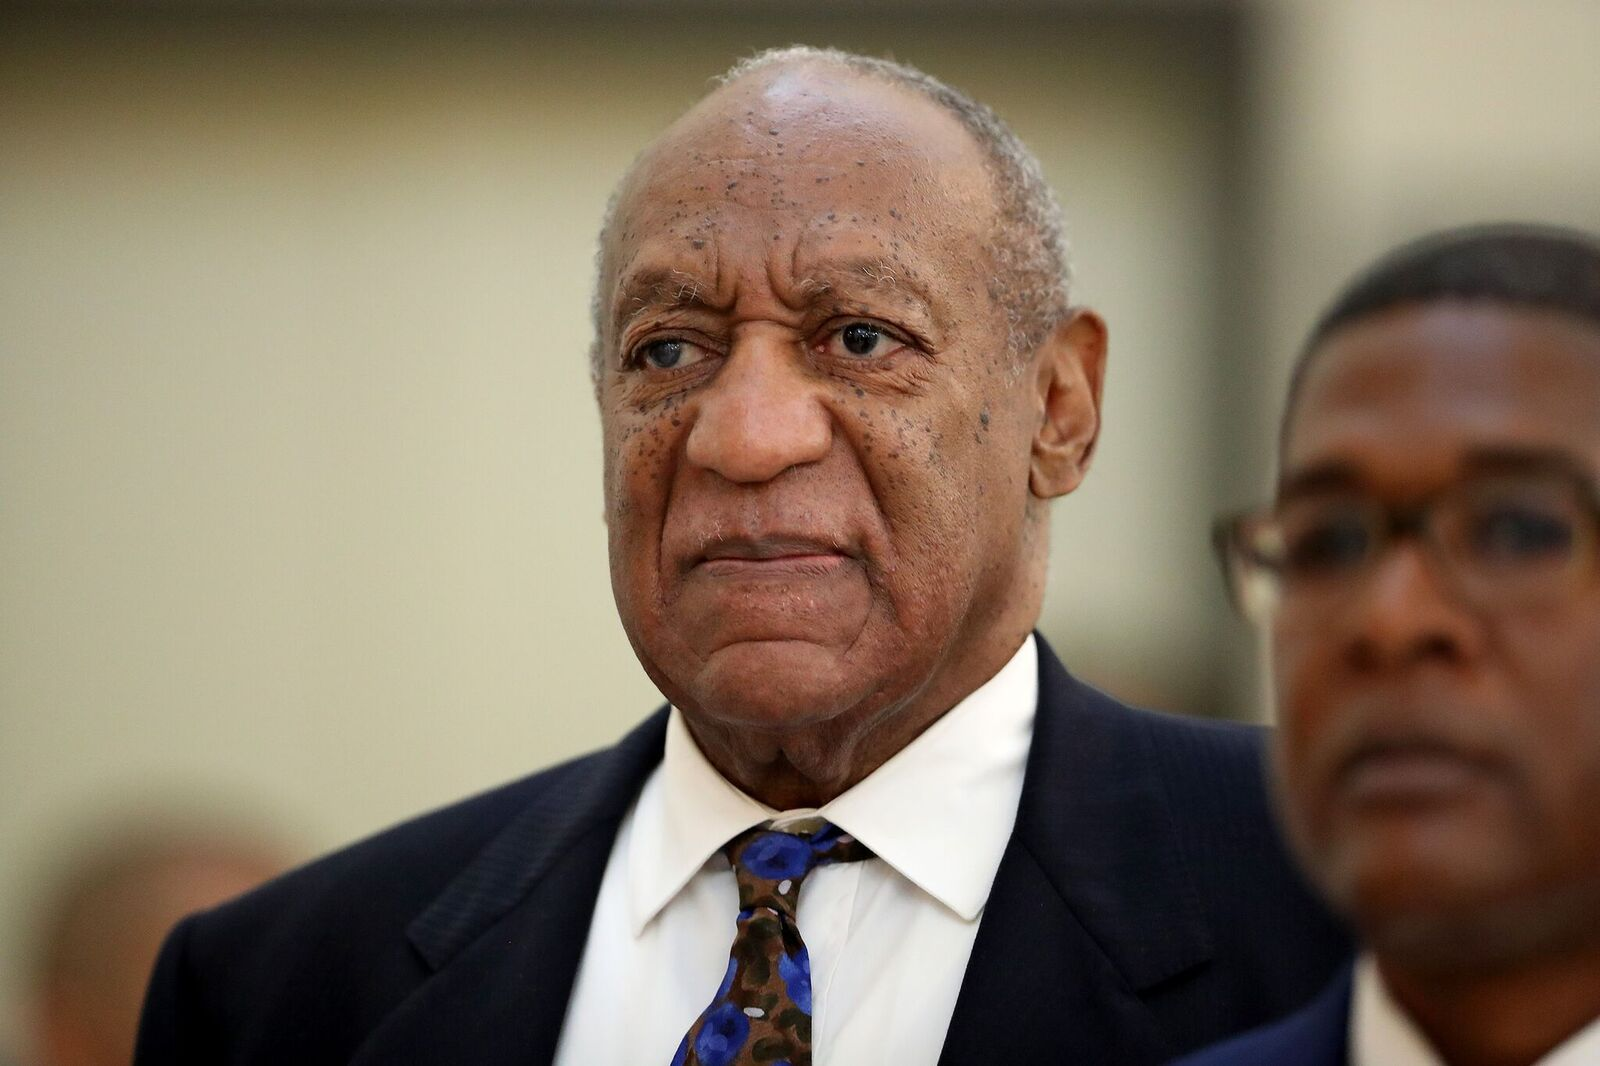 Bill Cosby and his spokesperson, Andrew Wyatt in the courtroom during his trial sentencing in September 2018. | Photo: Getty Images